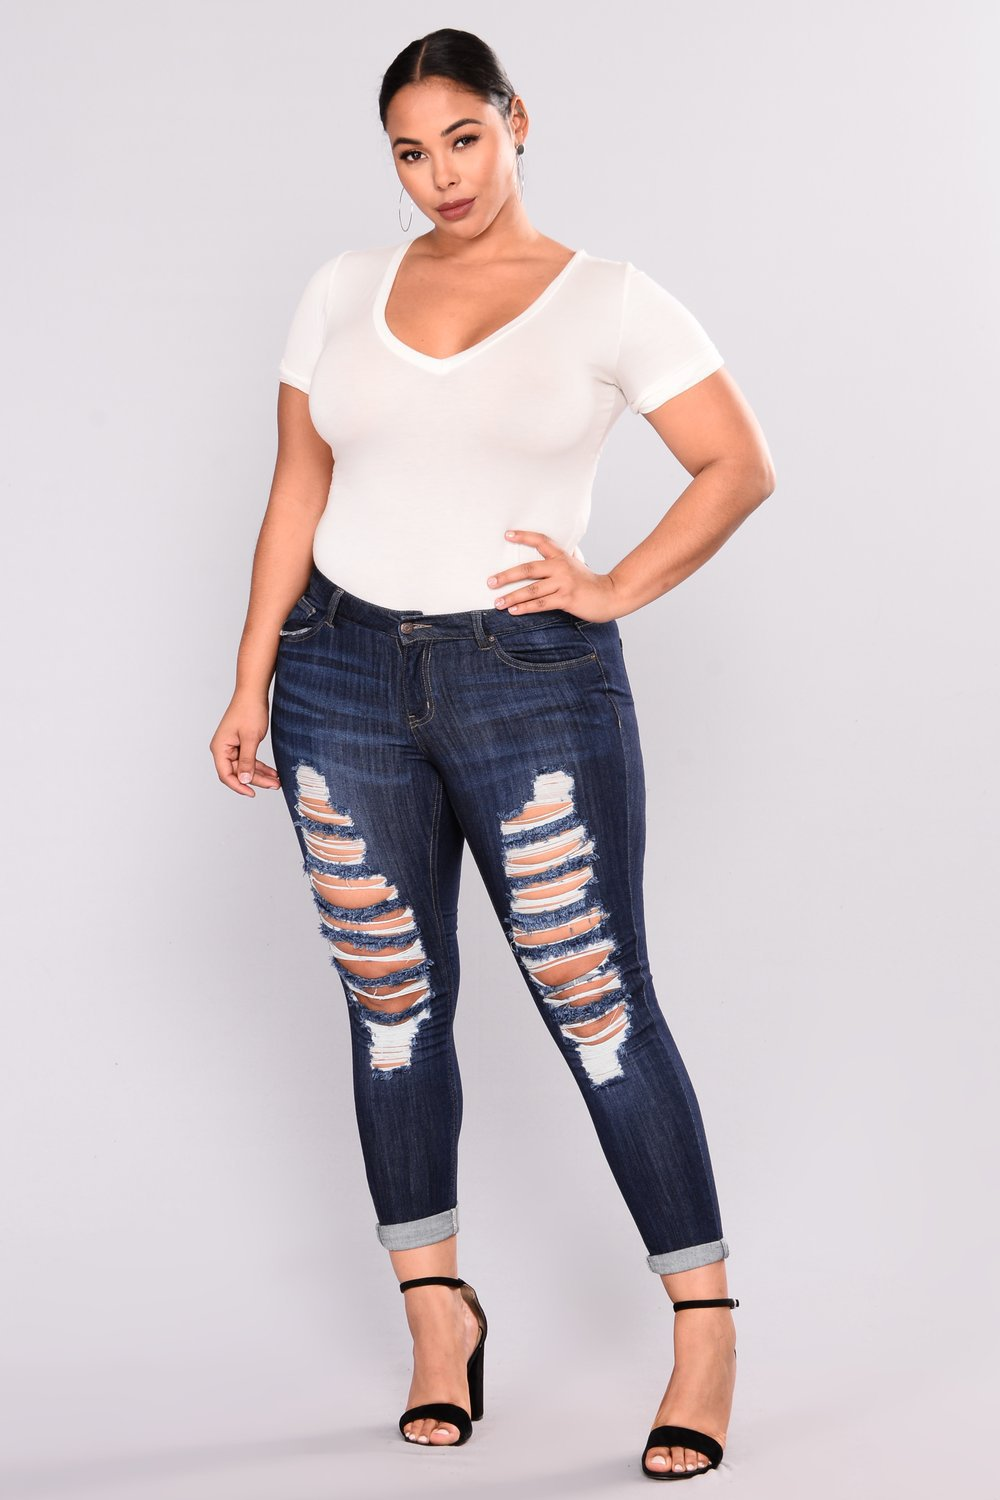 KiliFun Collection 515 Large Size Women's New African Jeans Stretch Denim Hole Ladies Feet Pants Black 3xl 13